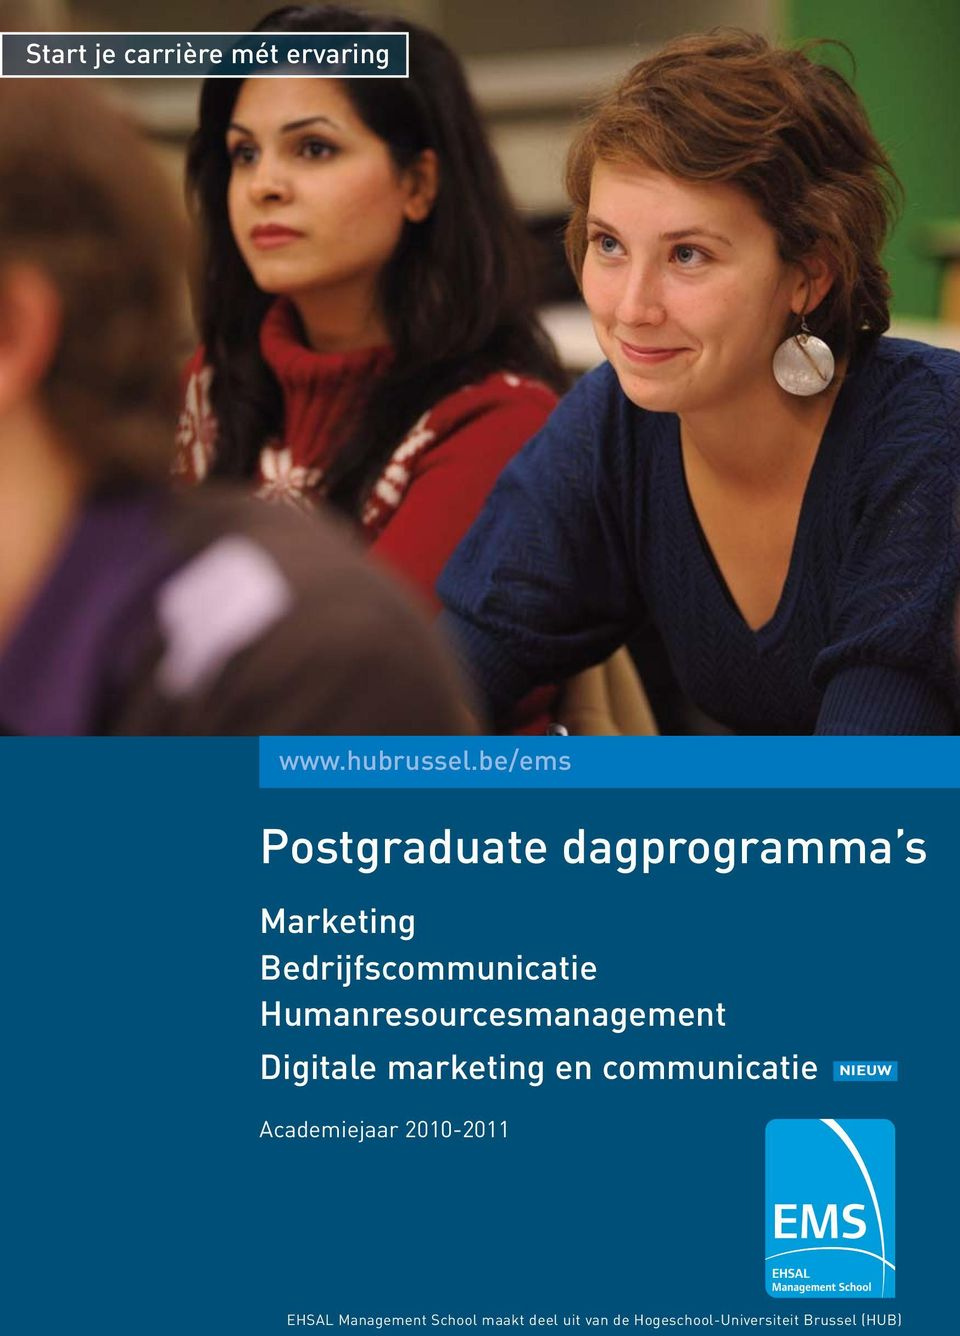 Bedrijfscommunicatie Humanresourcesmanagement Humanresourcesmanagement Digitale